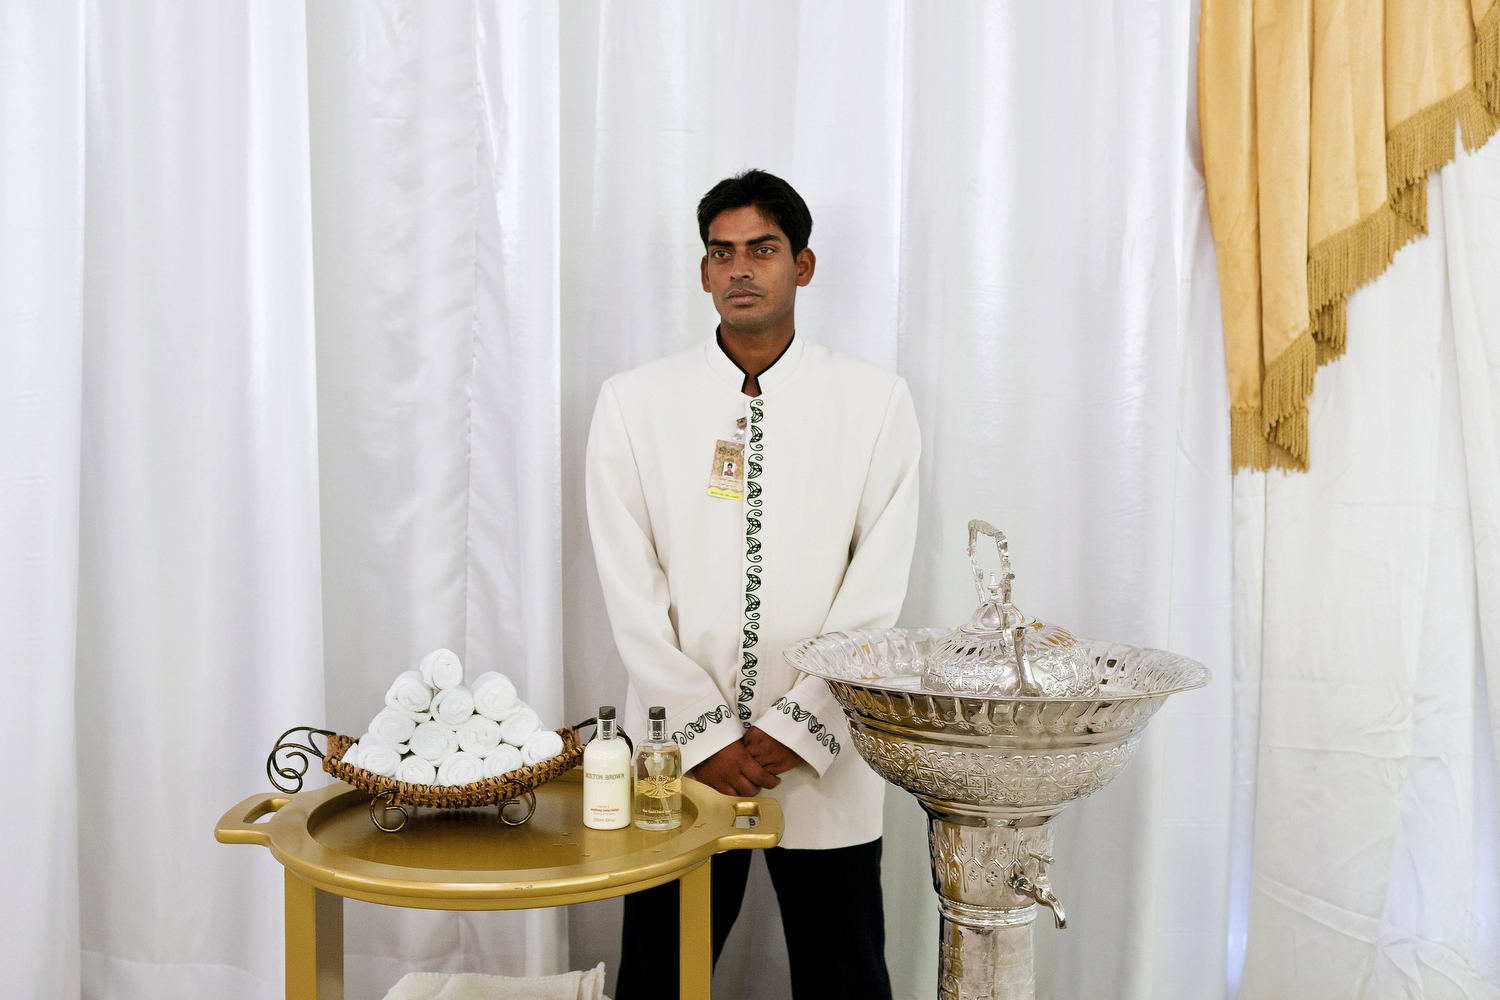 A servant waits at a hand-washing station during a royal wedding in the northern Emirate of Umm Al Quwain.